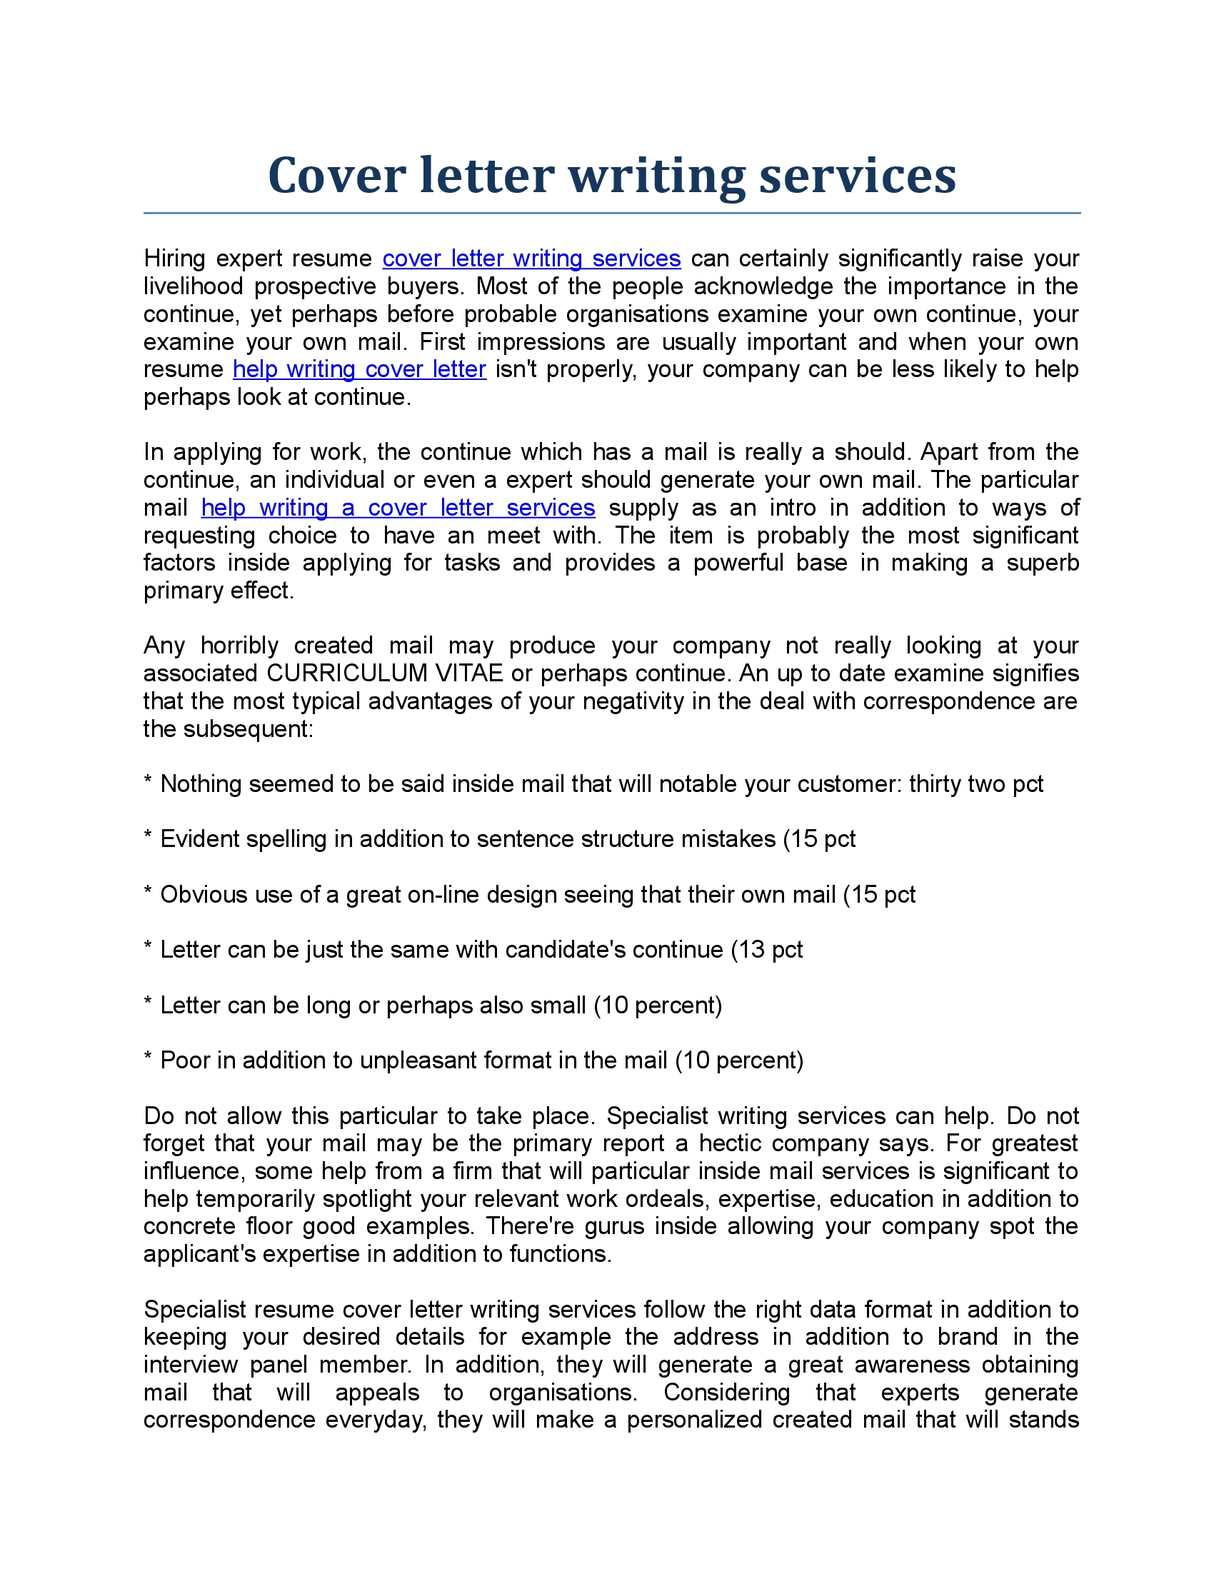 Calamo Cover Letter Writing Services